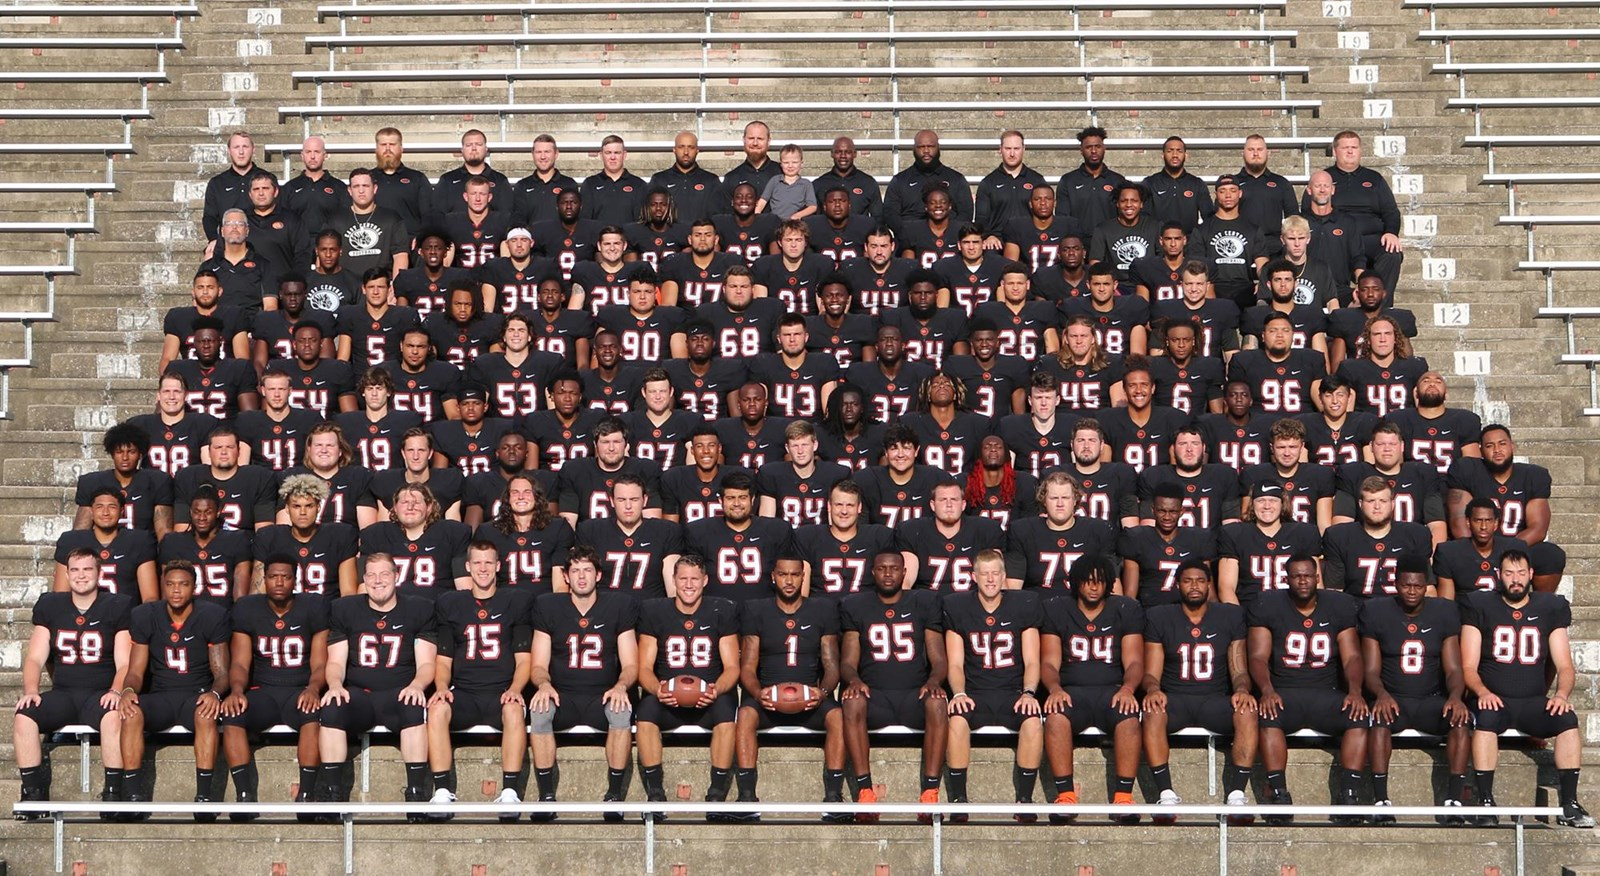 2018 Football Roster East Central University Athletics